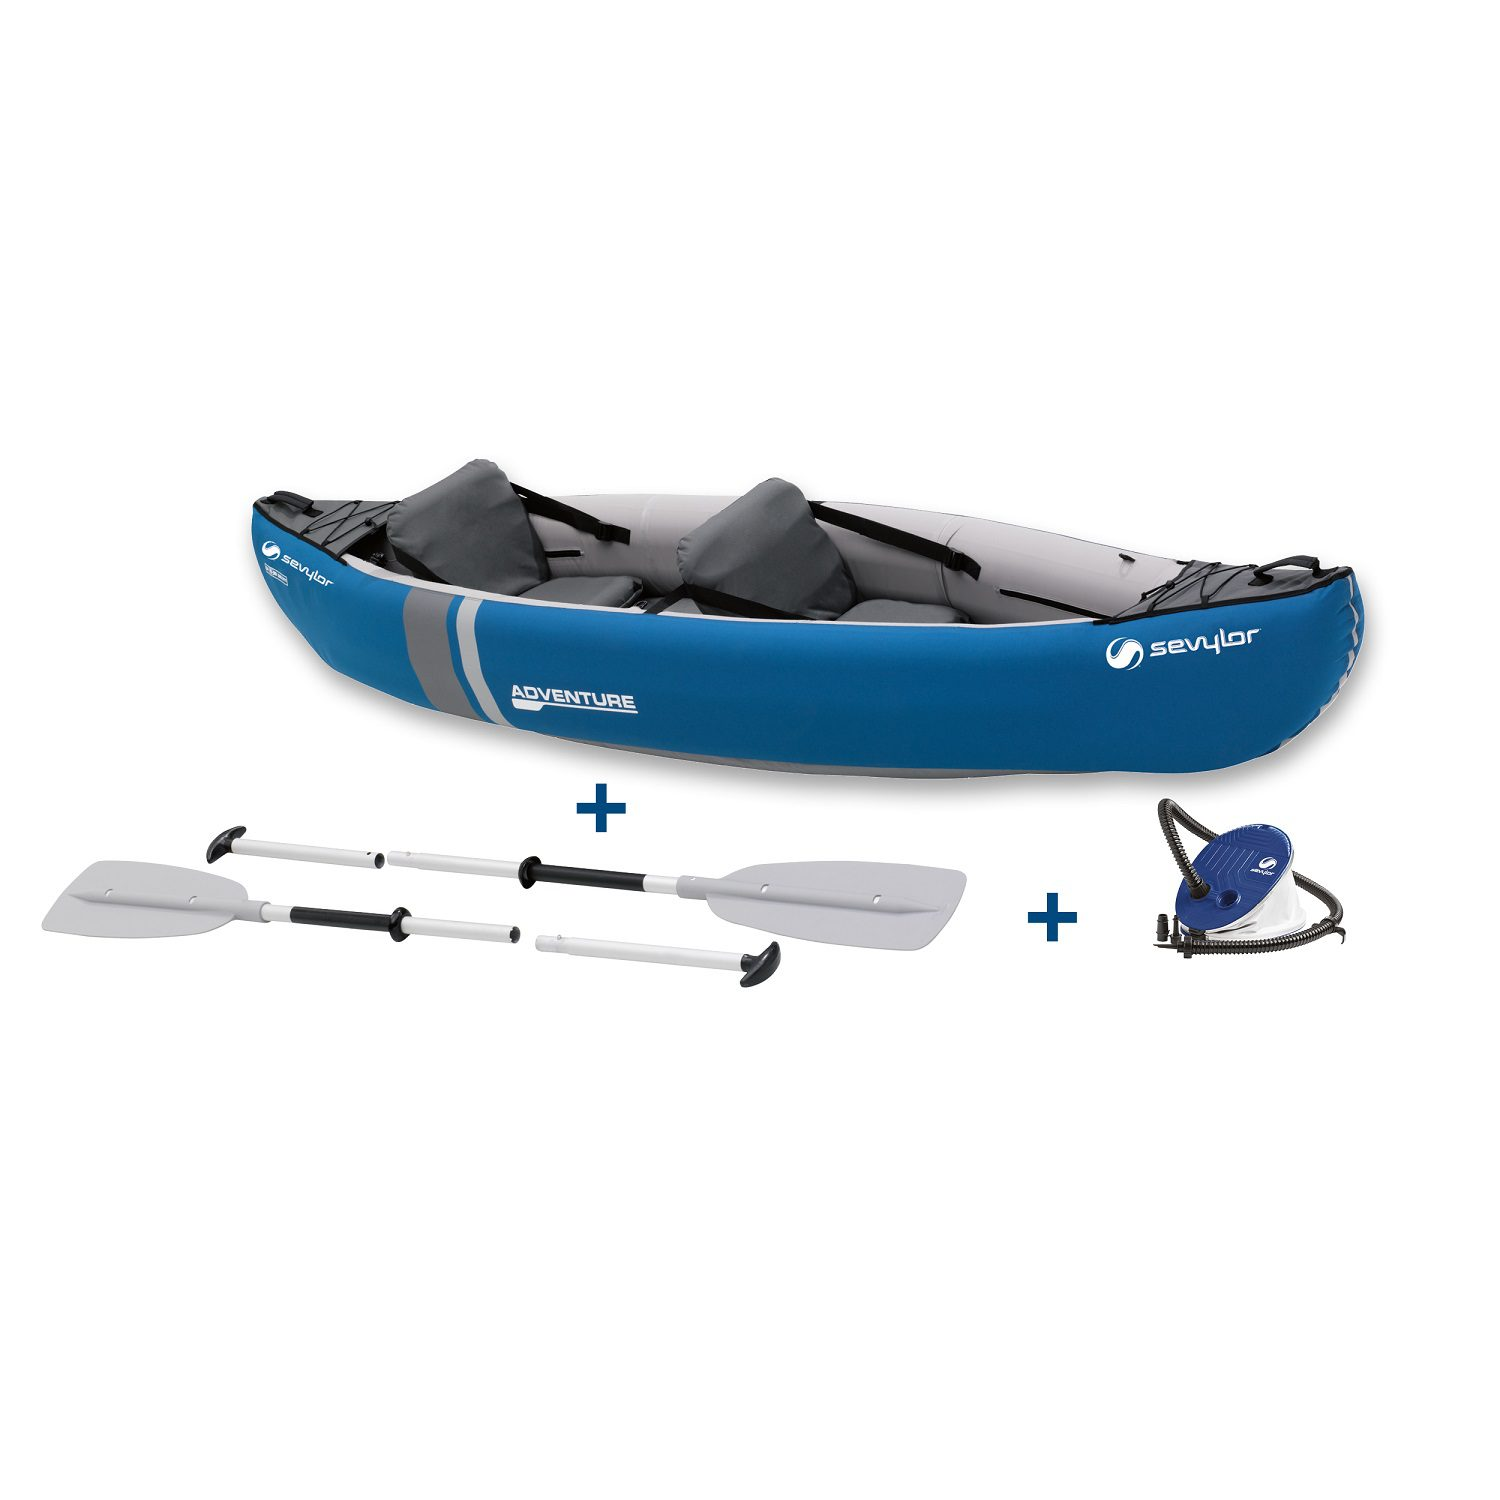 Sevylor Adventure Kit Inflatable Canoe - 2000009548